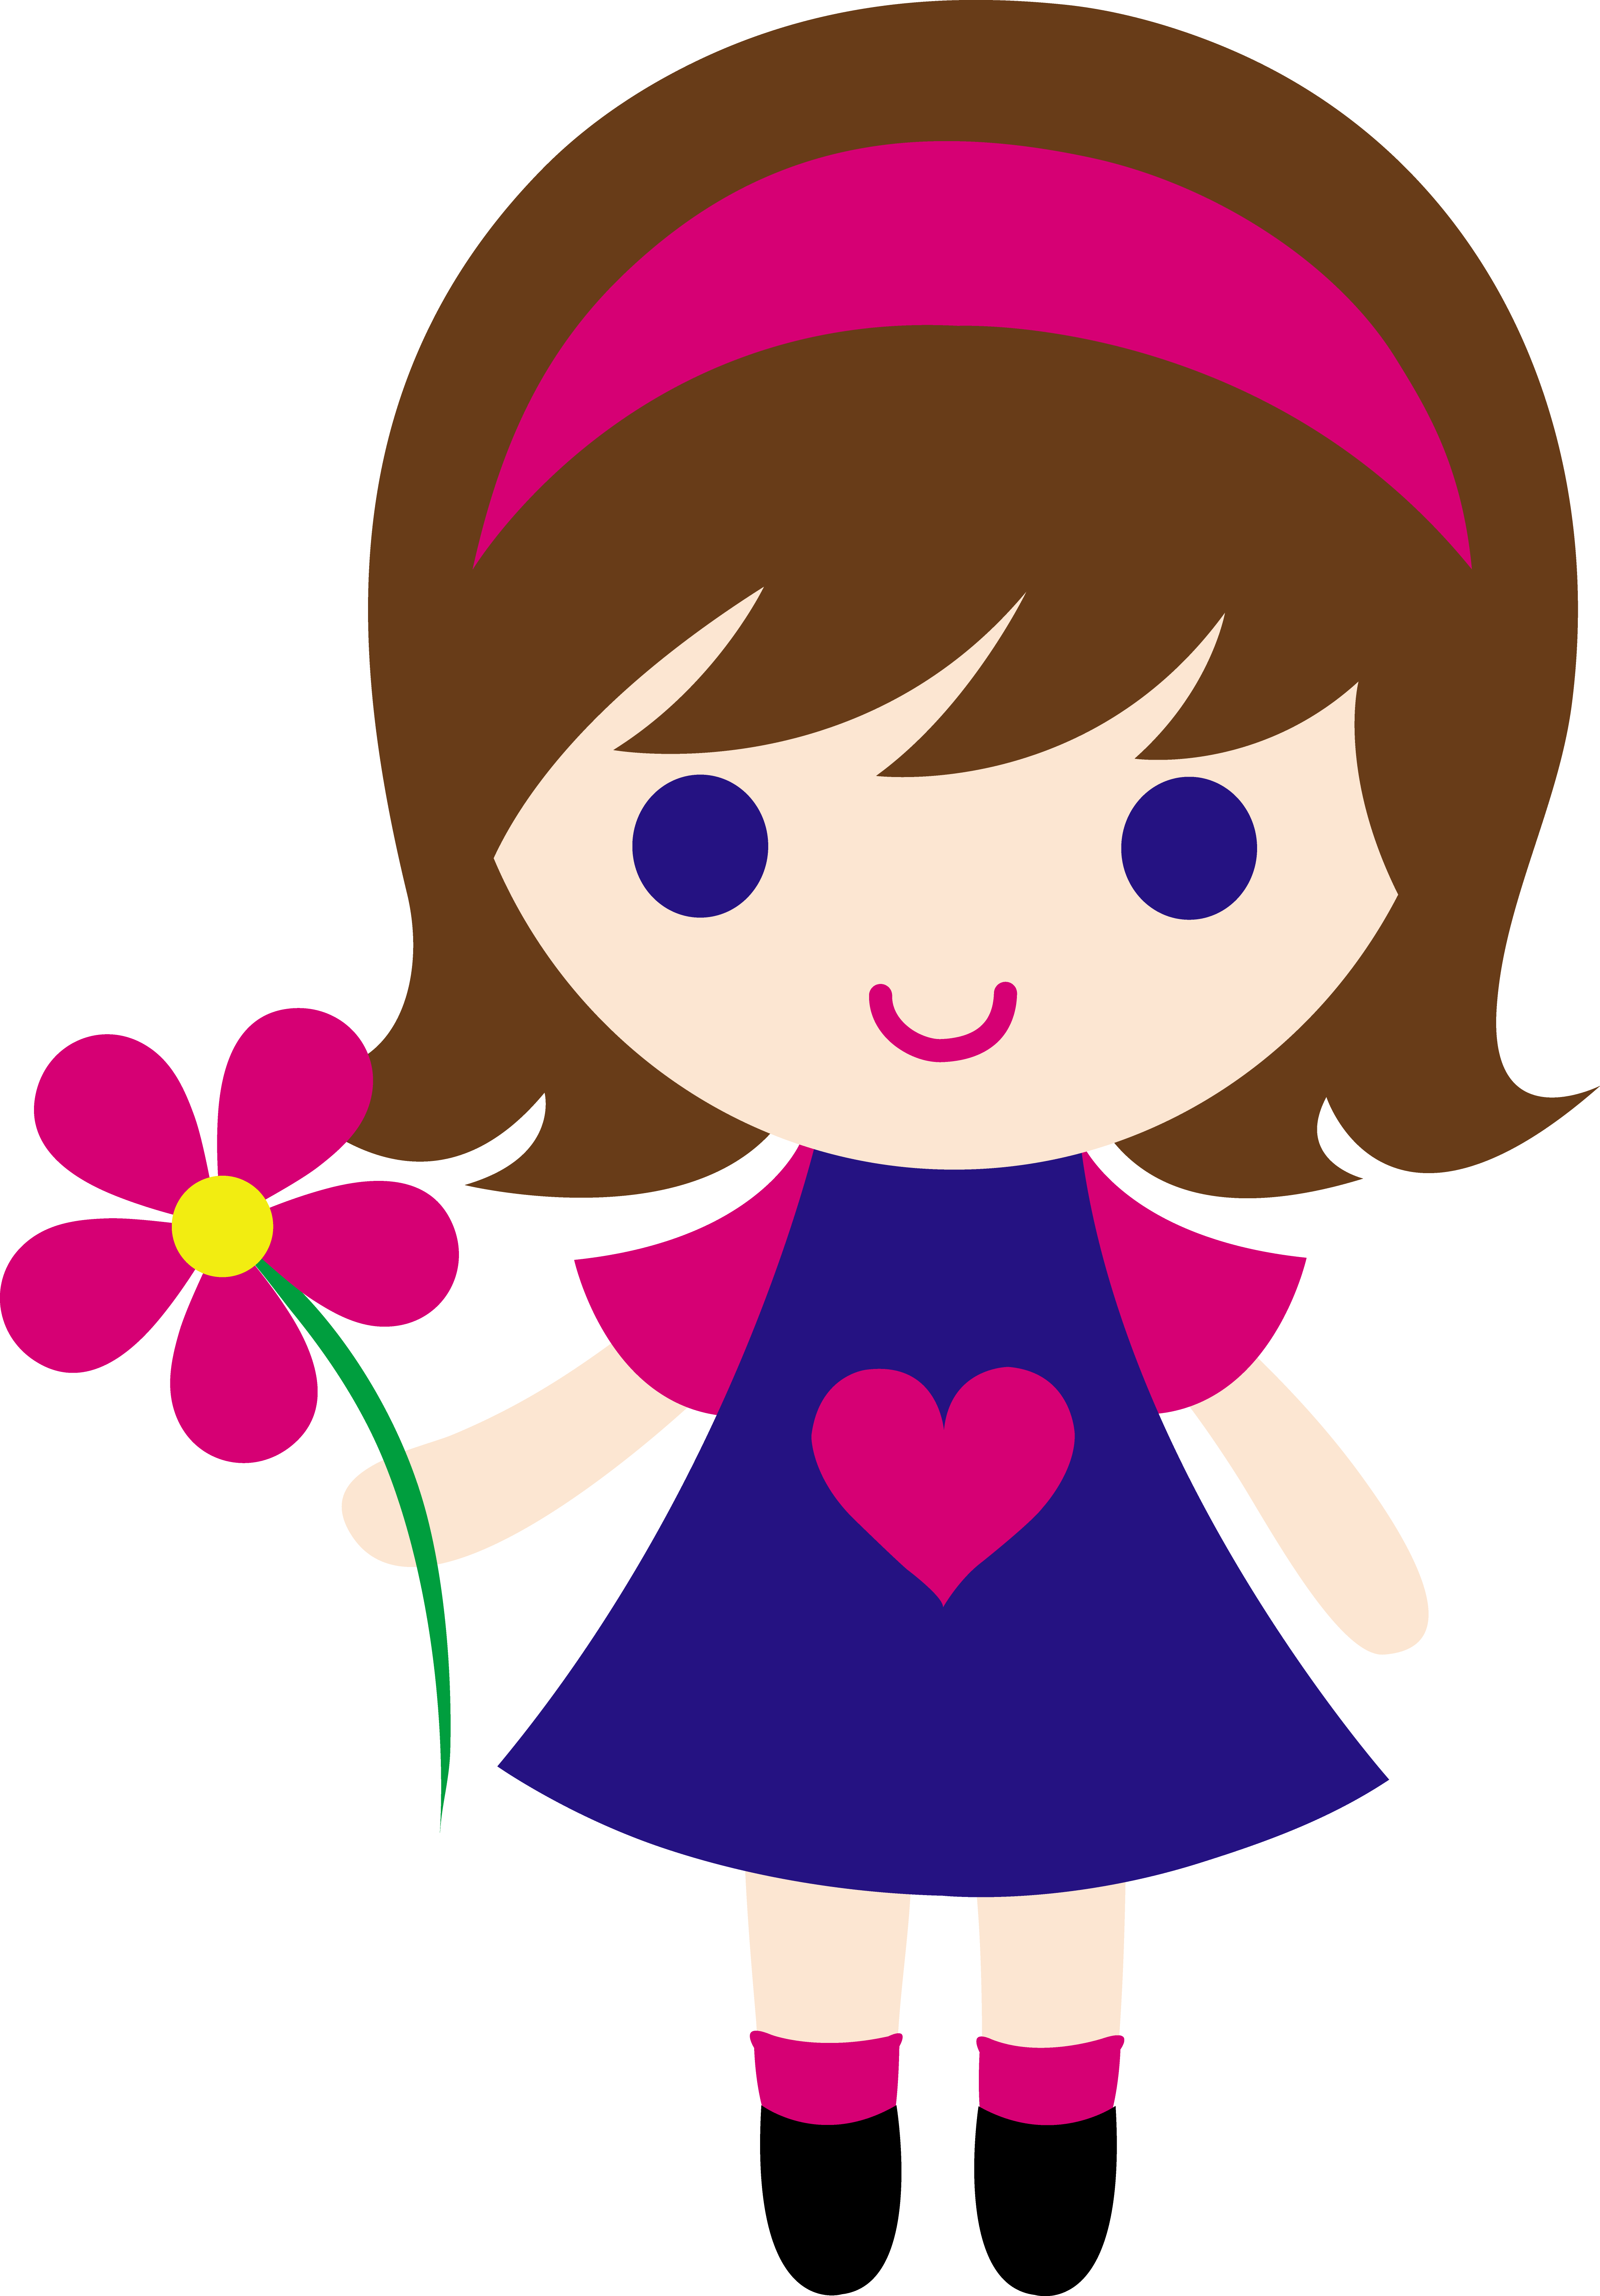 cartoon girl My clip art of a little girl holding pink daisy sweet clip png